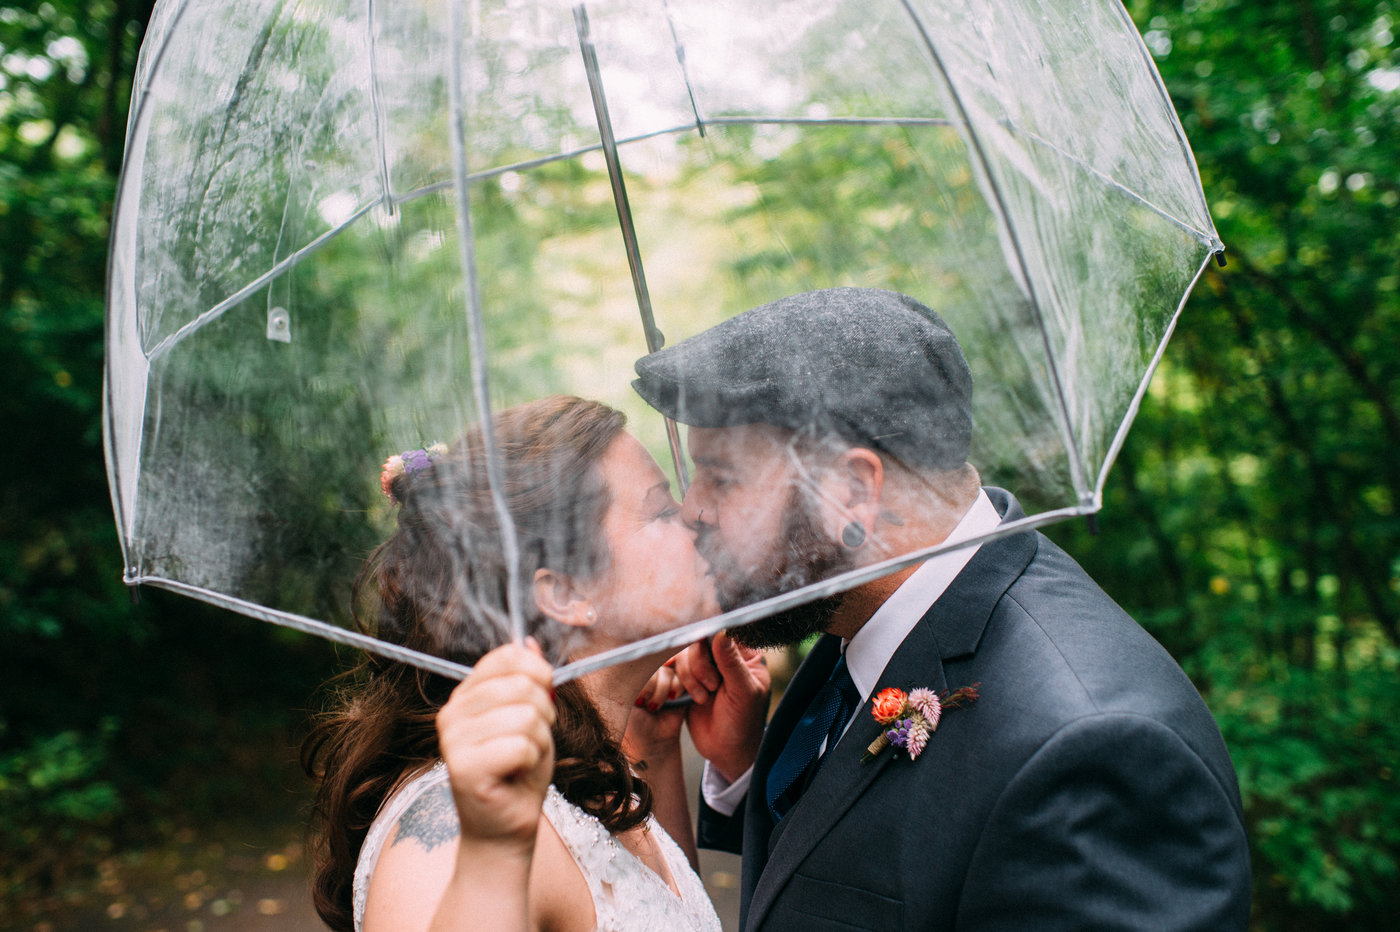 rob kristen a rustic rainy wedding day-Rob KristenWeddingEDIT-0155.jpg